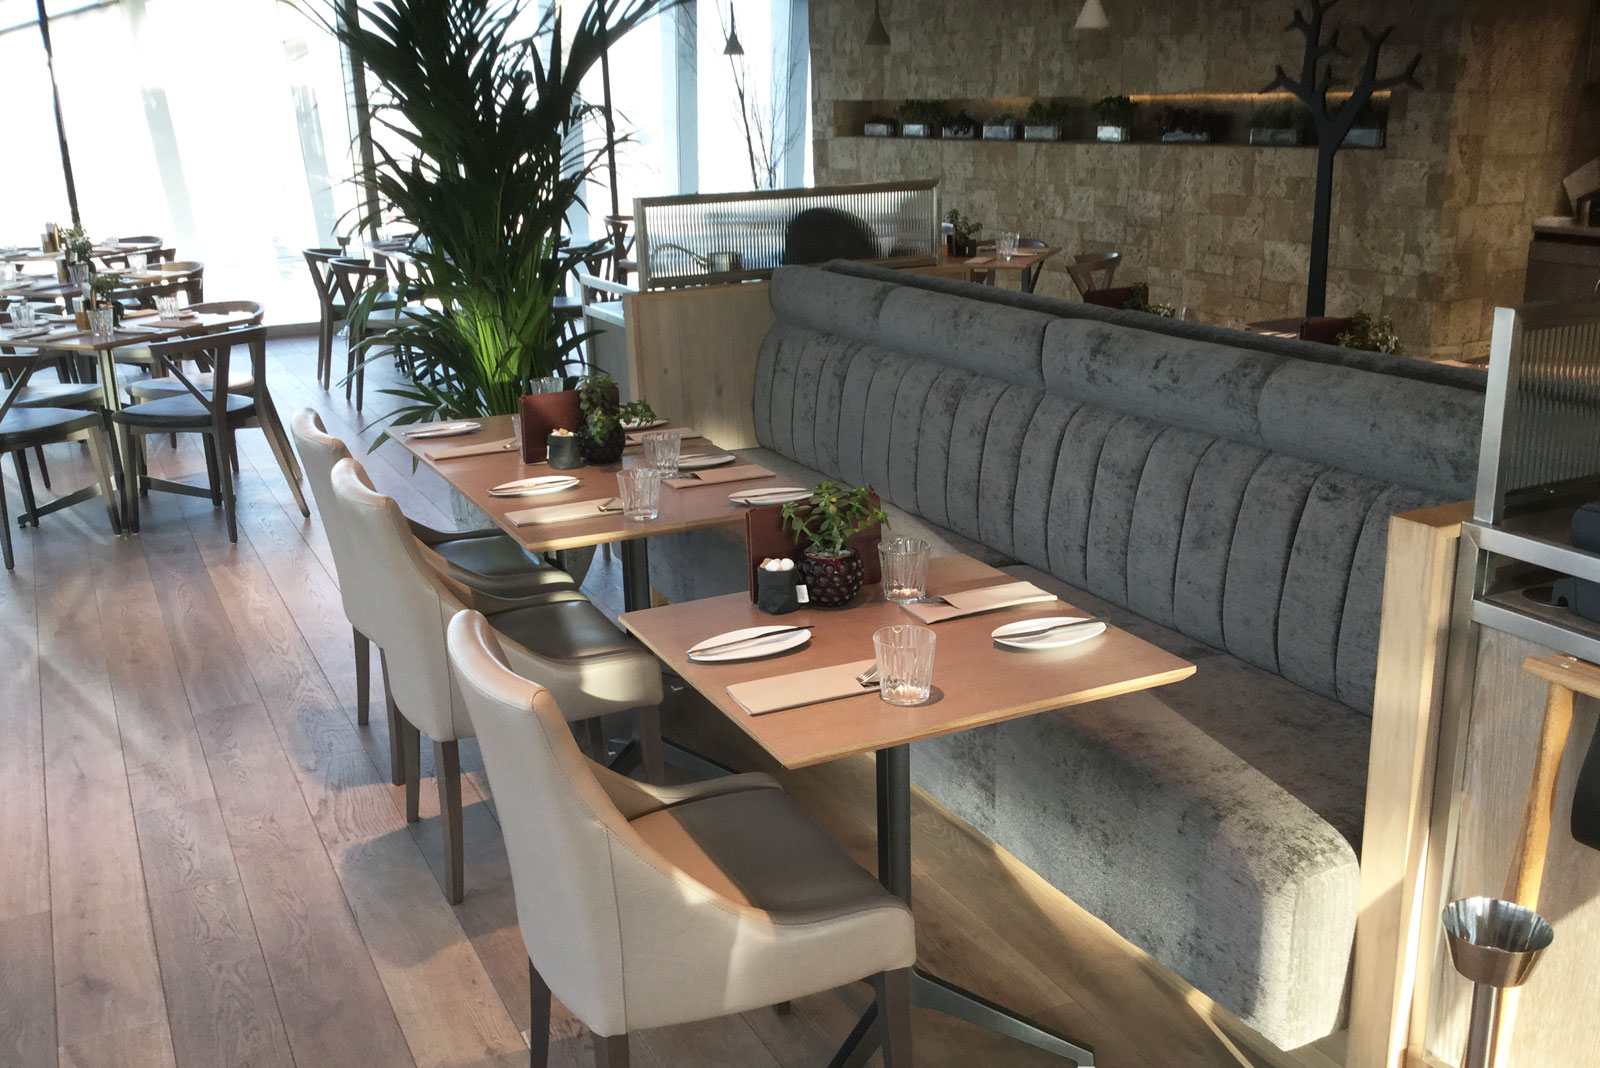 Banquette seating for sky garden london fitz impressions for What is banquette seating